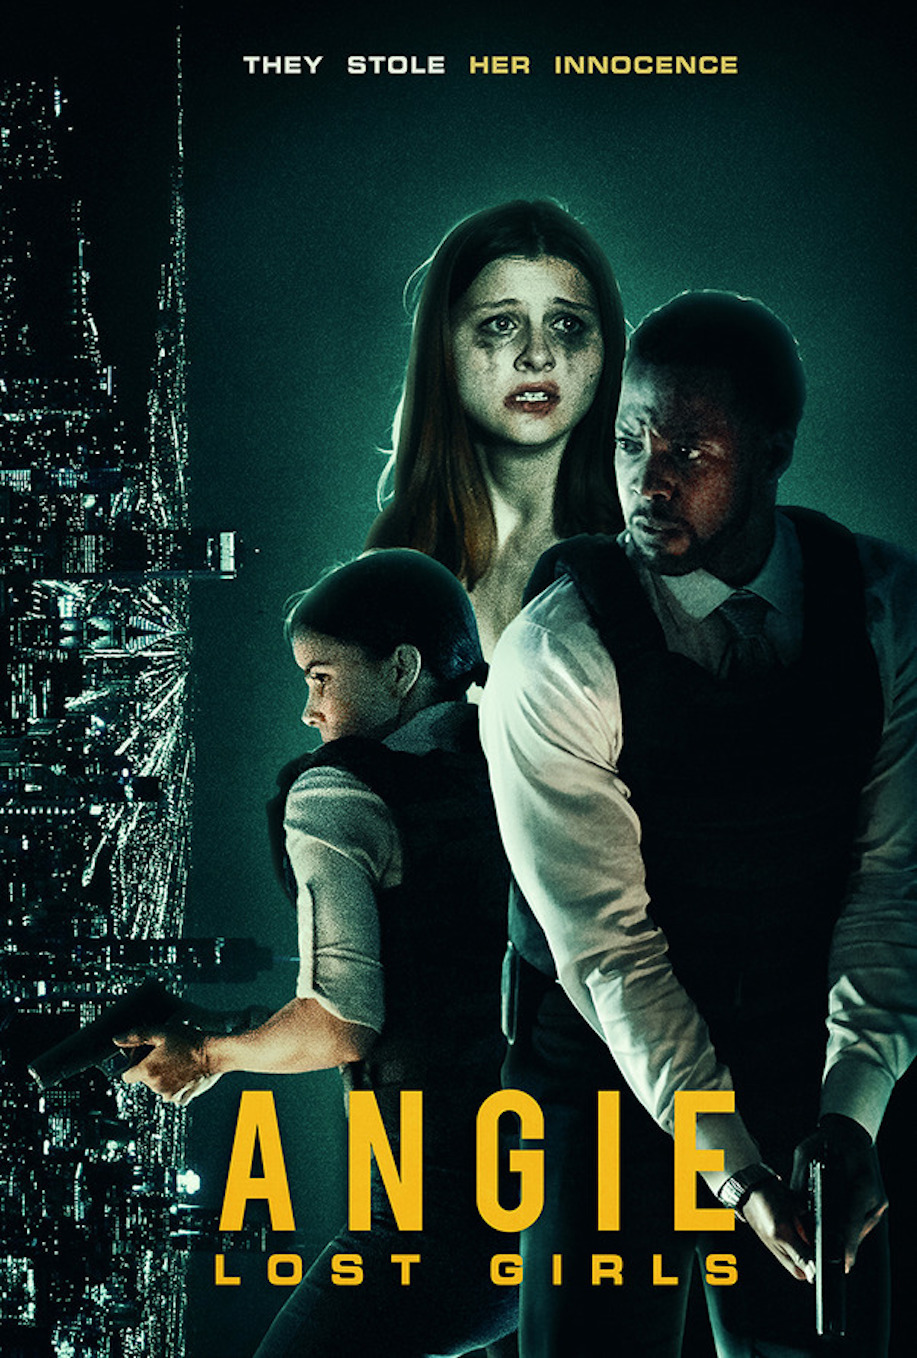 Lost Girls Angie Official Poster